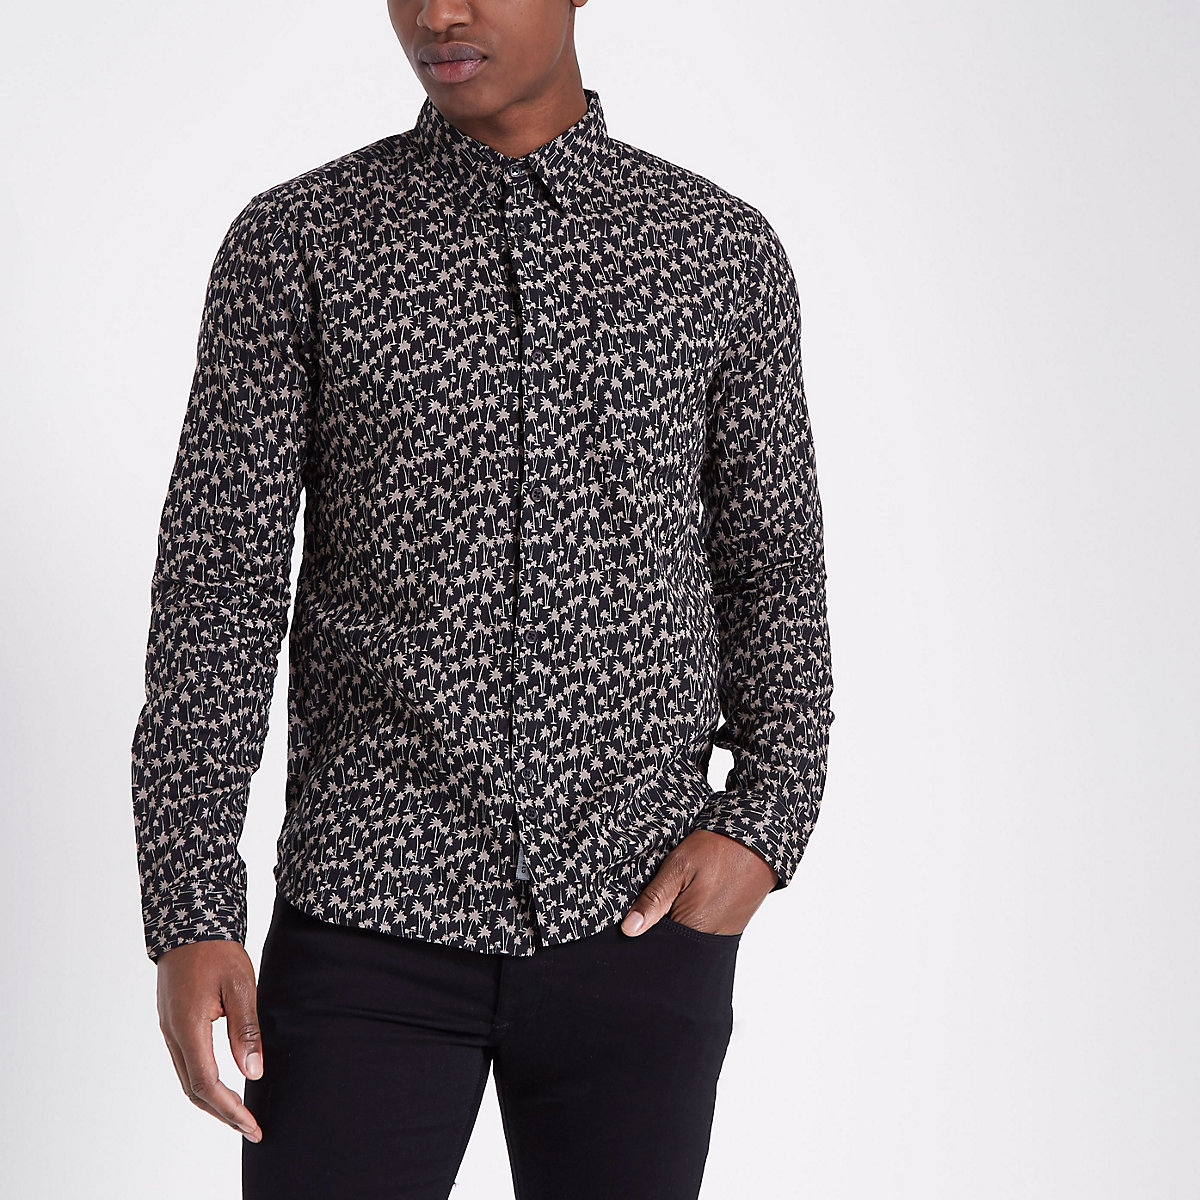 Bellfield black palm print long sleeve shirt